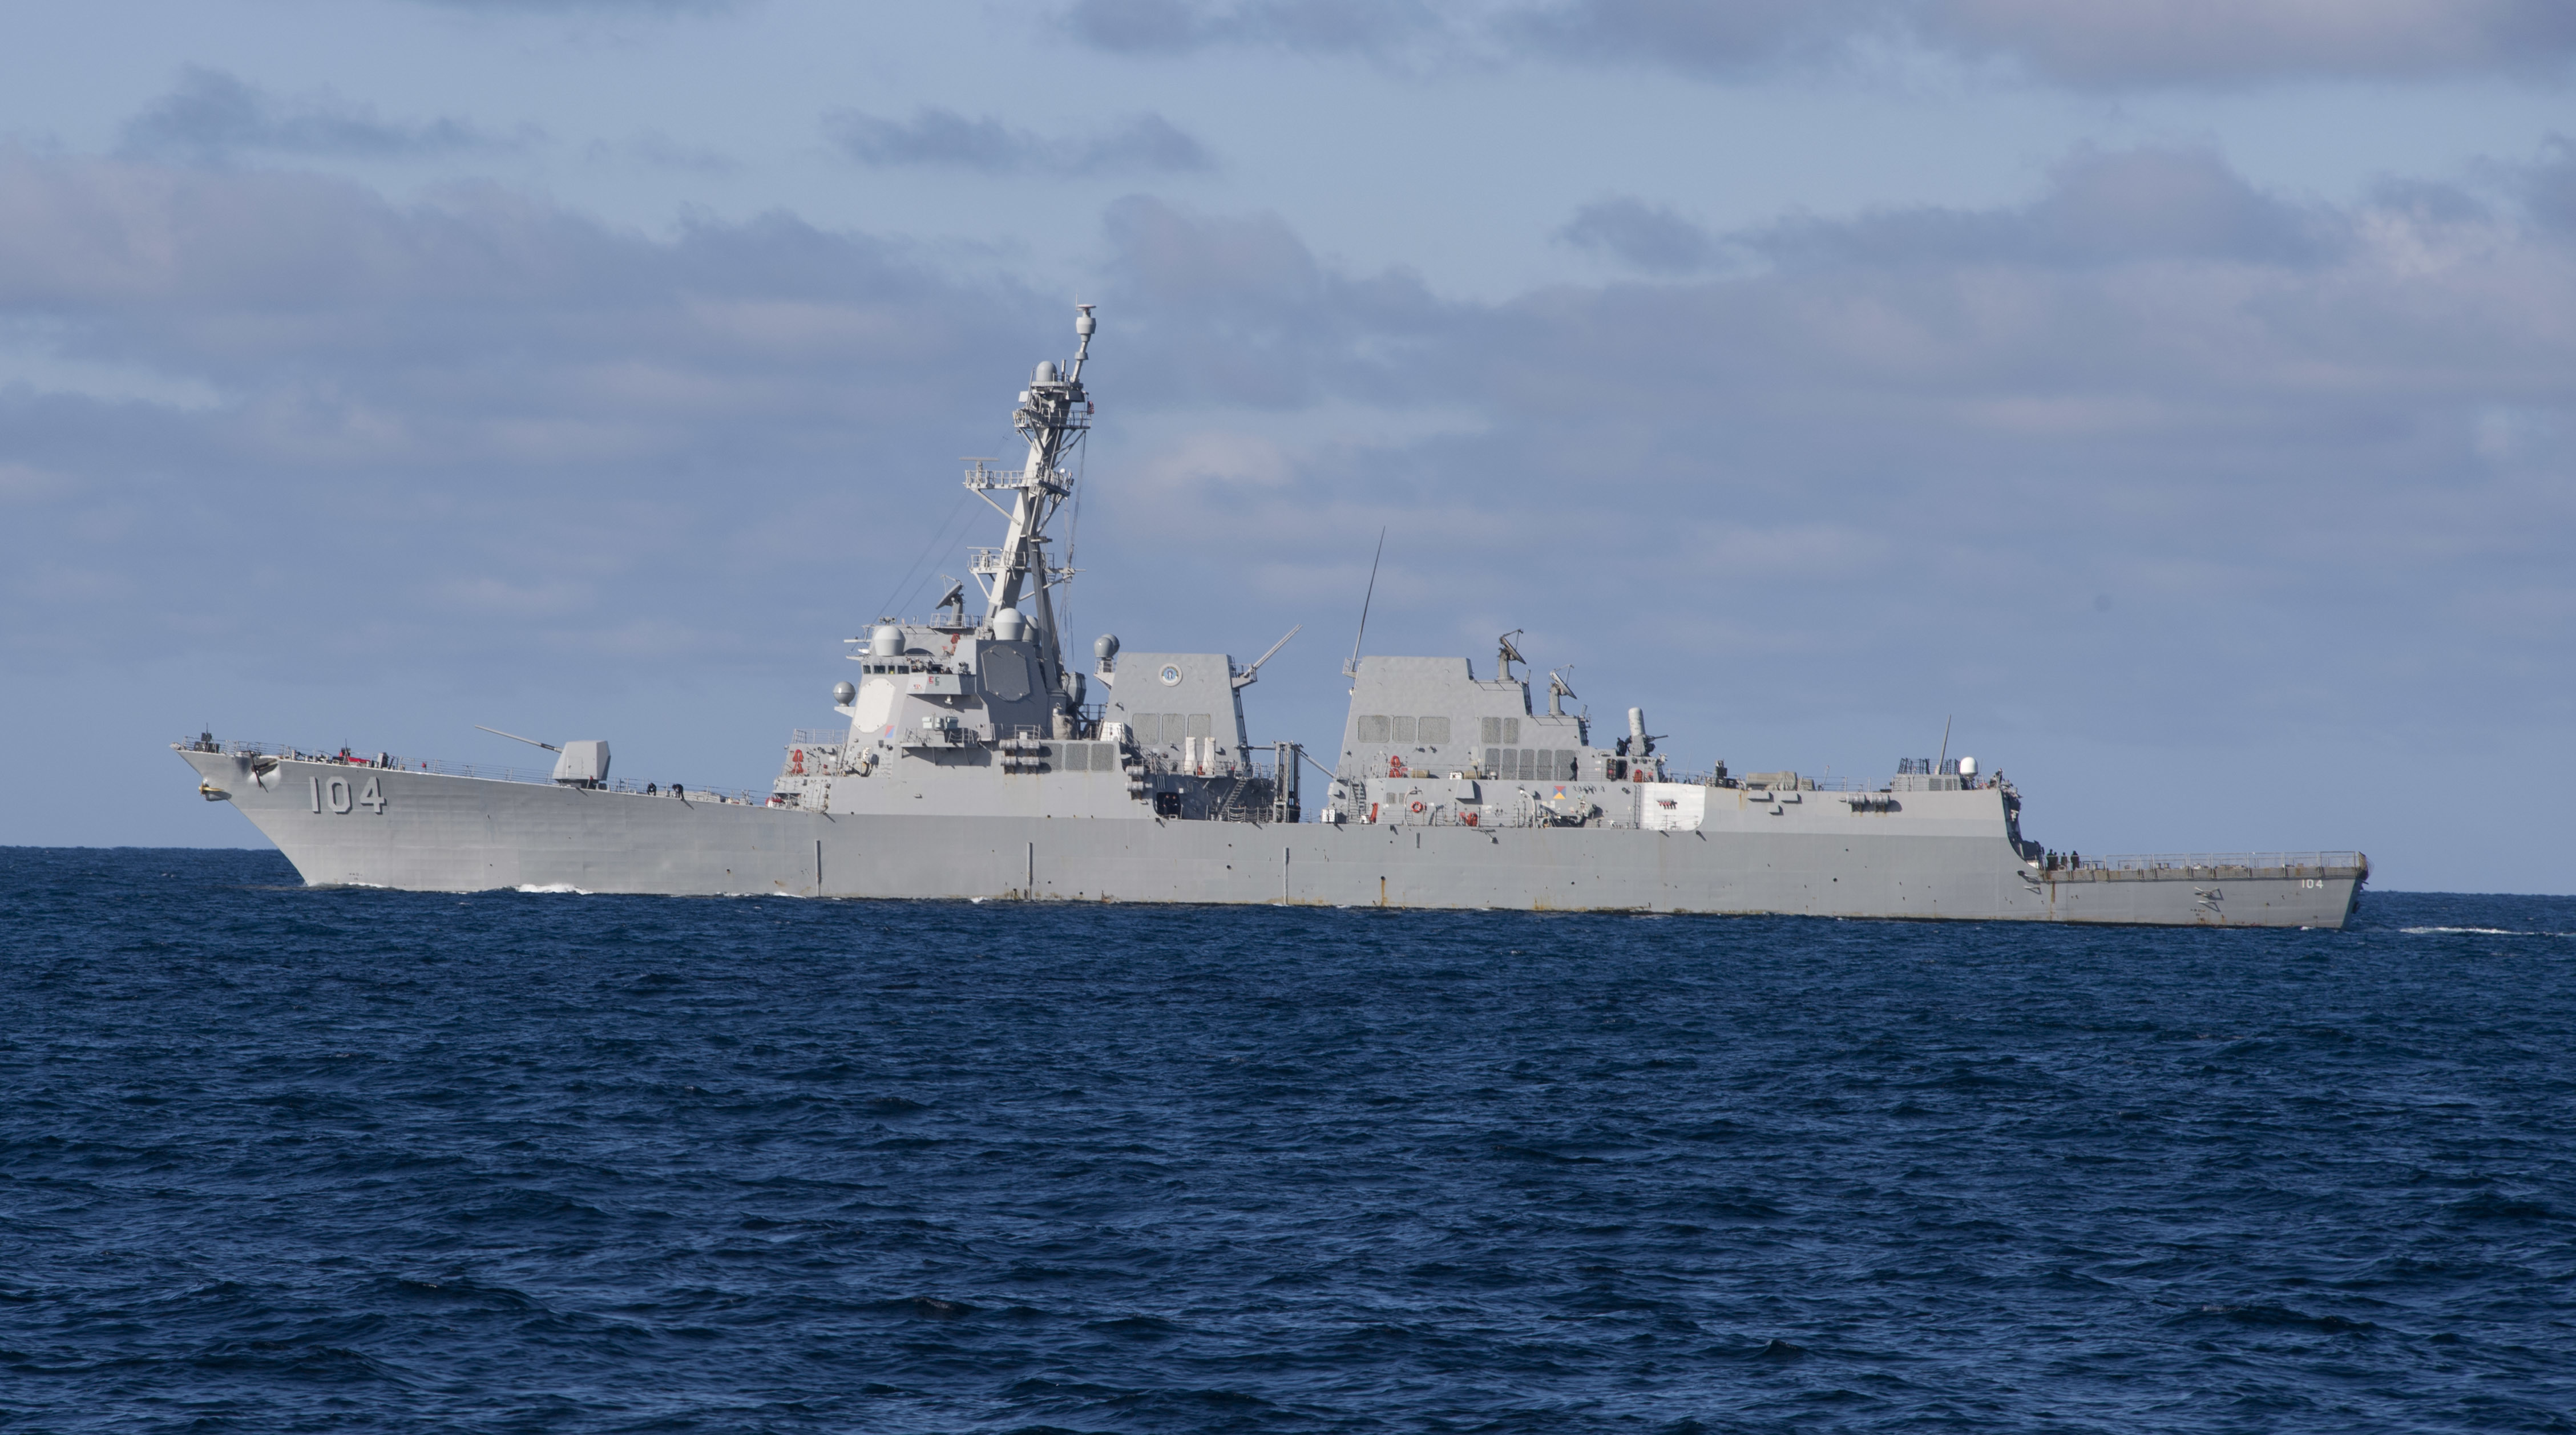 PACIFIC OCEAN – San Diego-based Arleigh Burke-class guided-missile destroyer USS Sterett (DDG 104) entered the U.S. 7th Fleet area of operations on March 3.